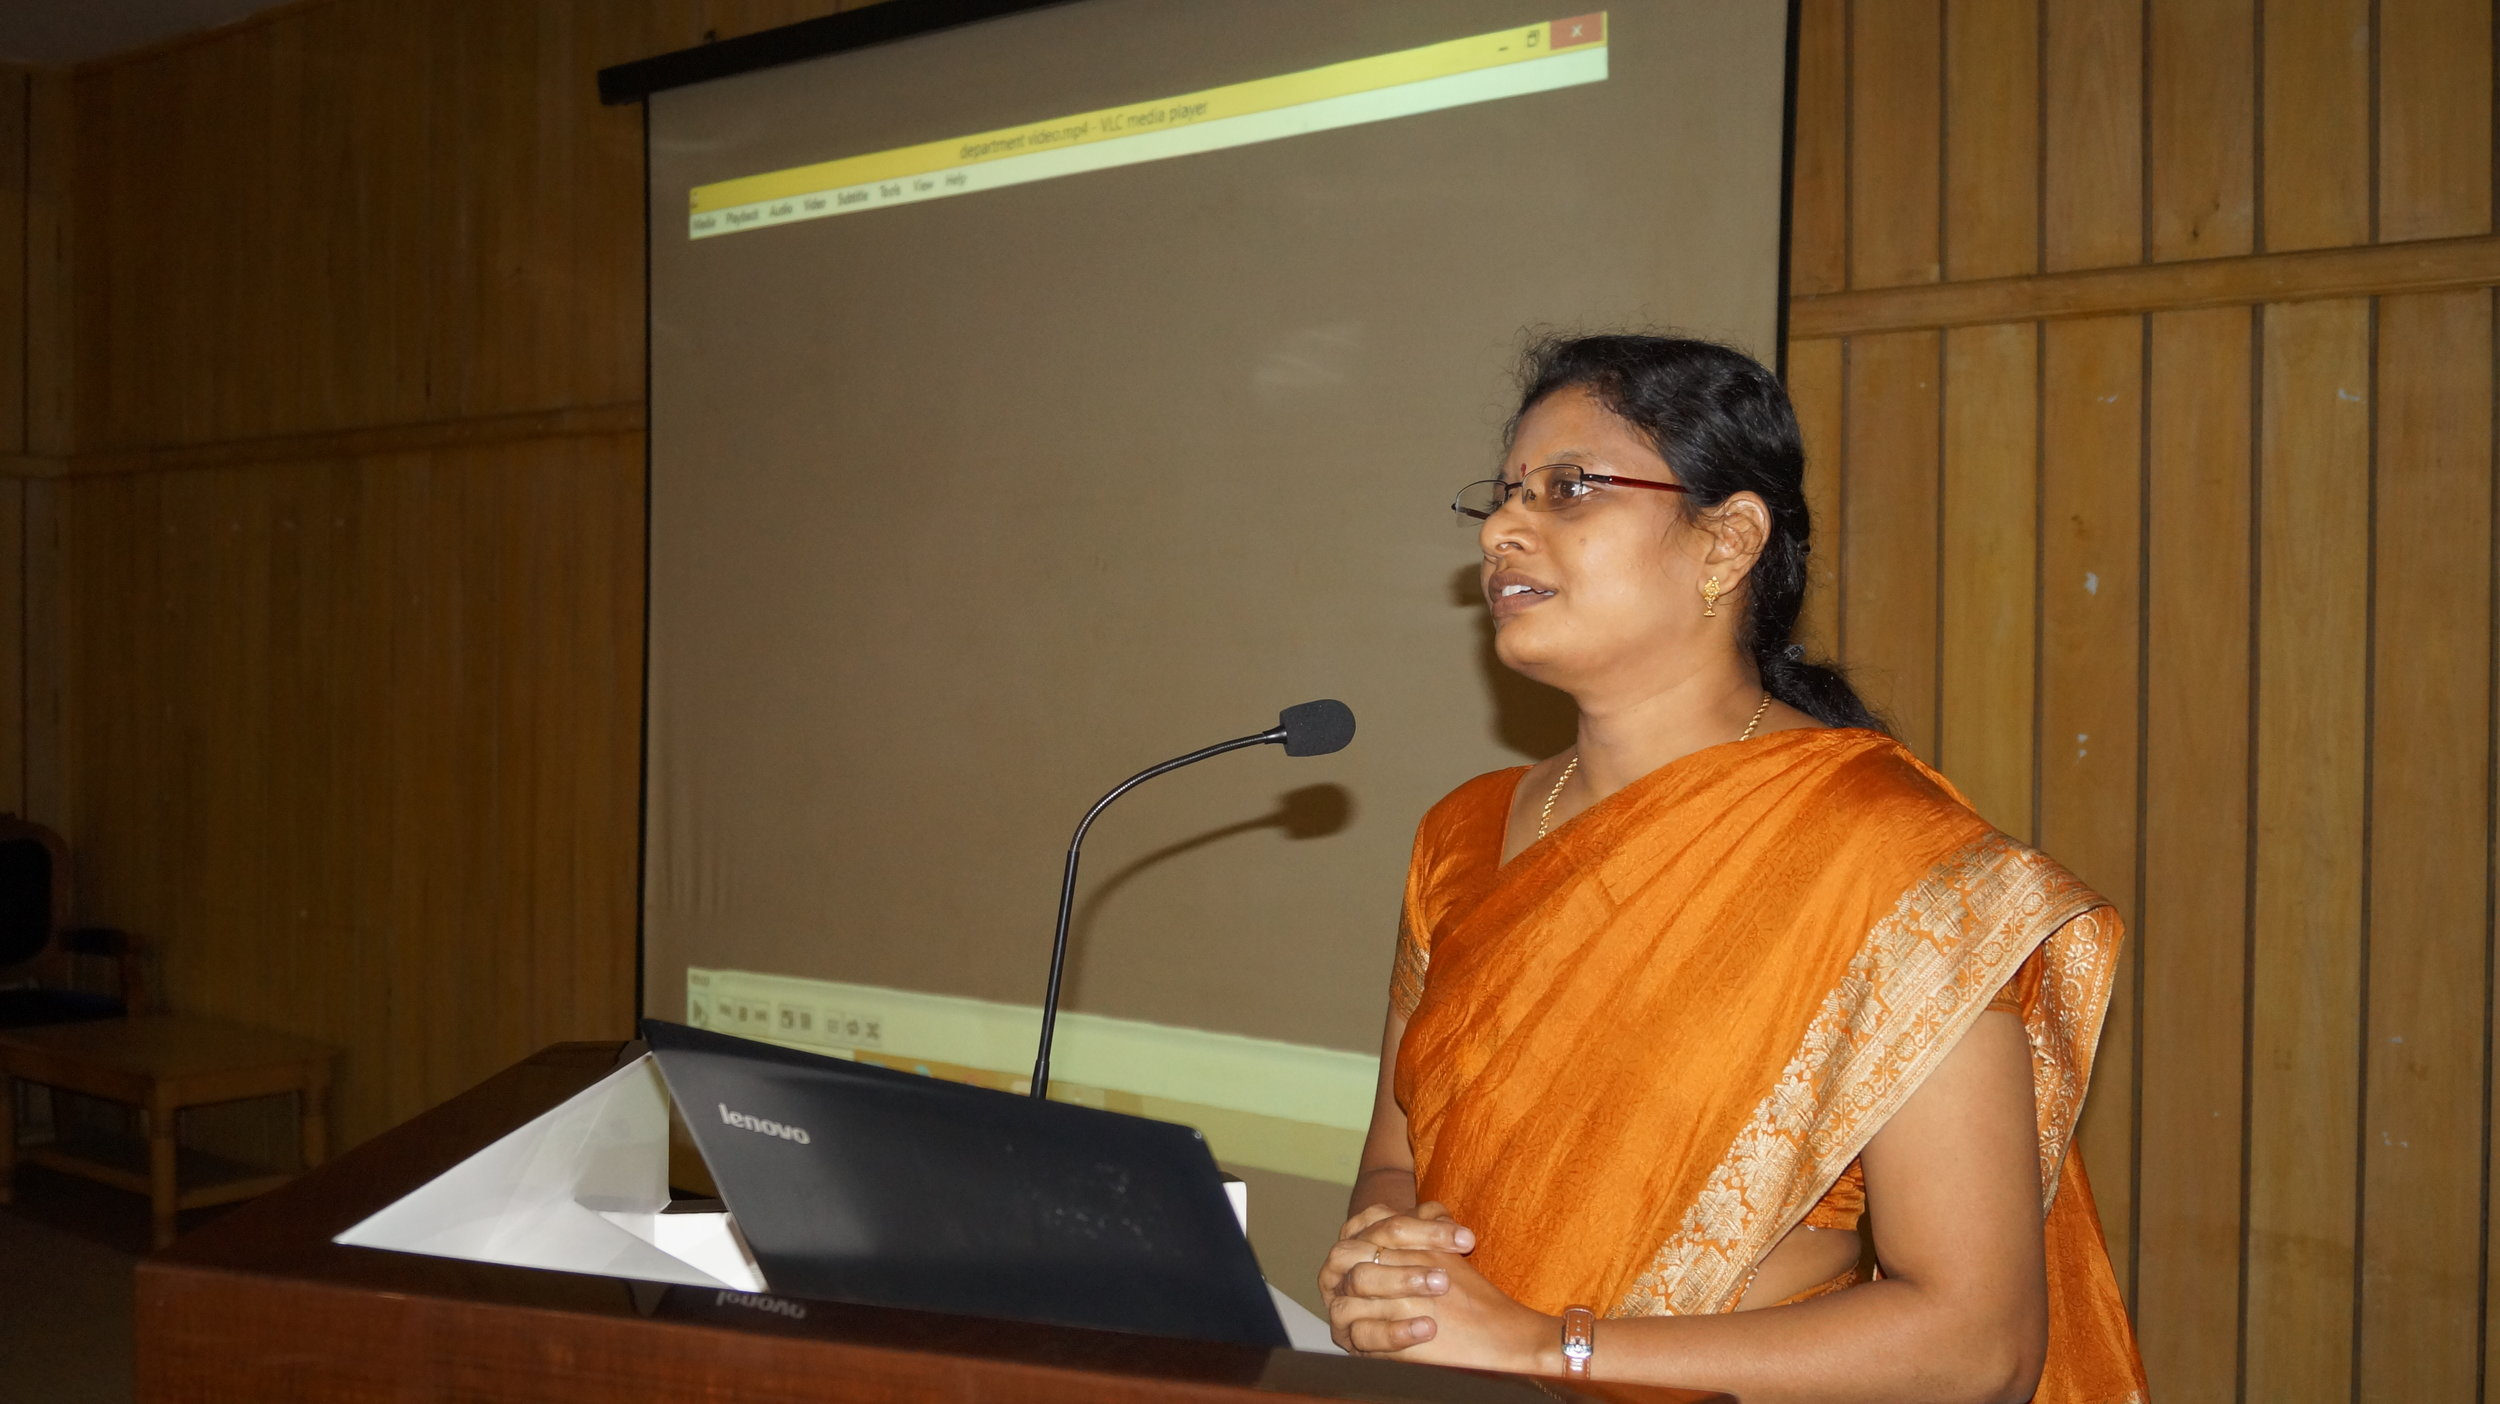 Dr.M.P.Brundha presenting the achievements and department activities in EDIFY